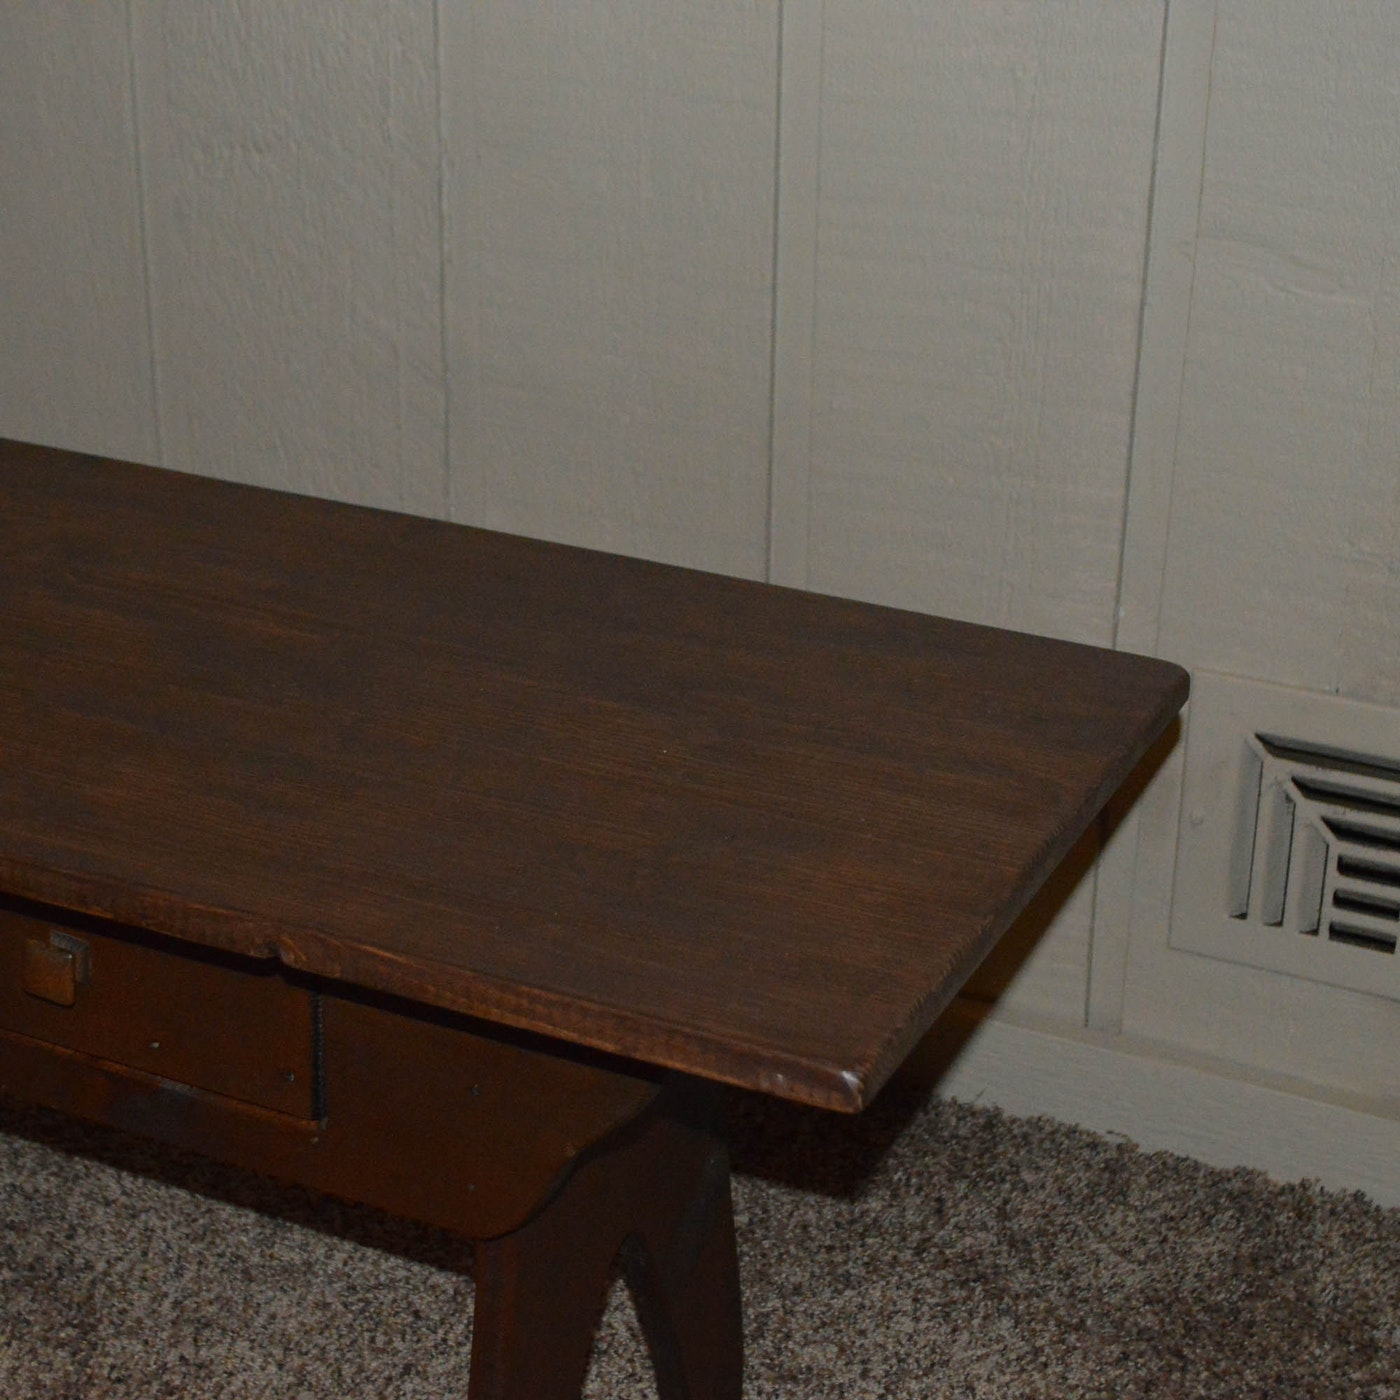 Vintage rustic coffee table ebth for Nfpa 99 table 5 1 11